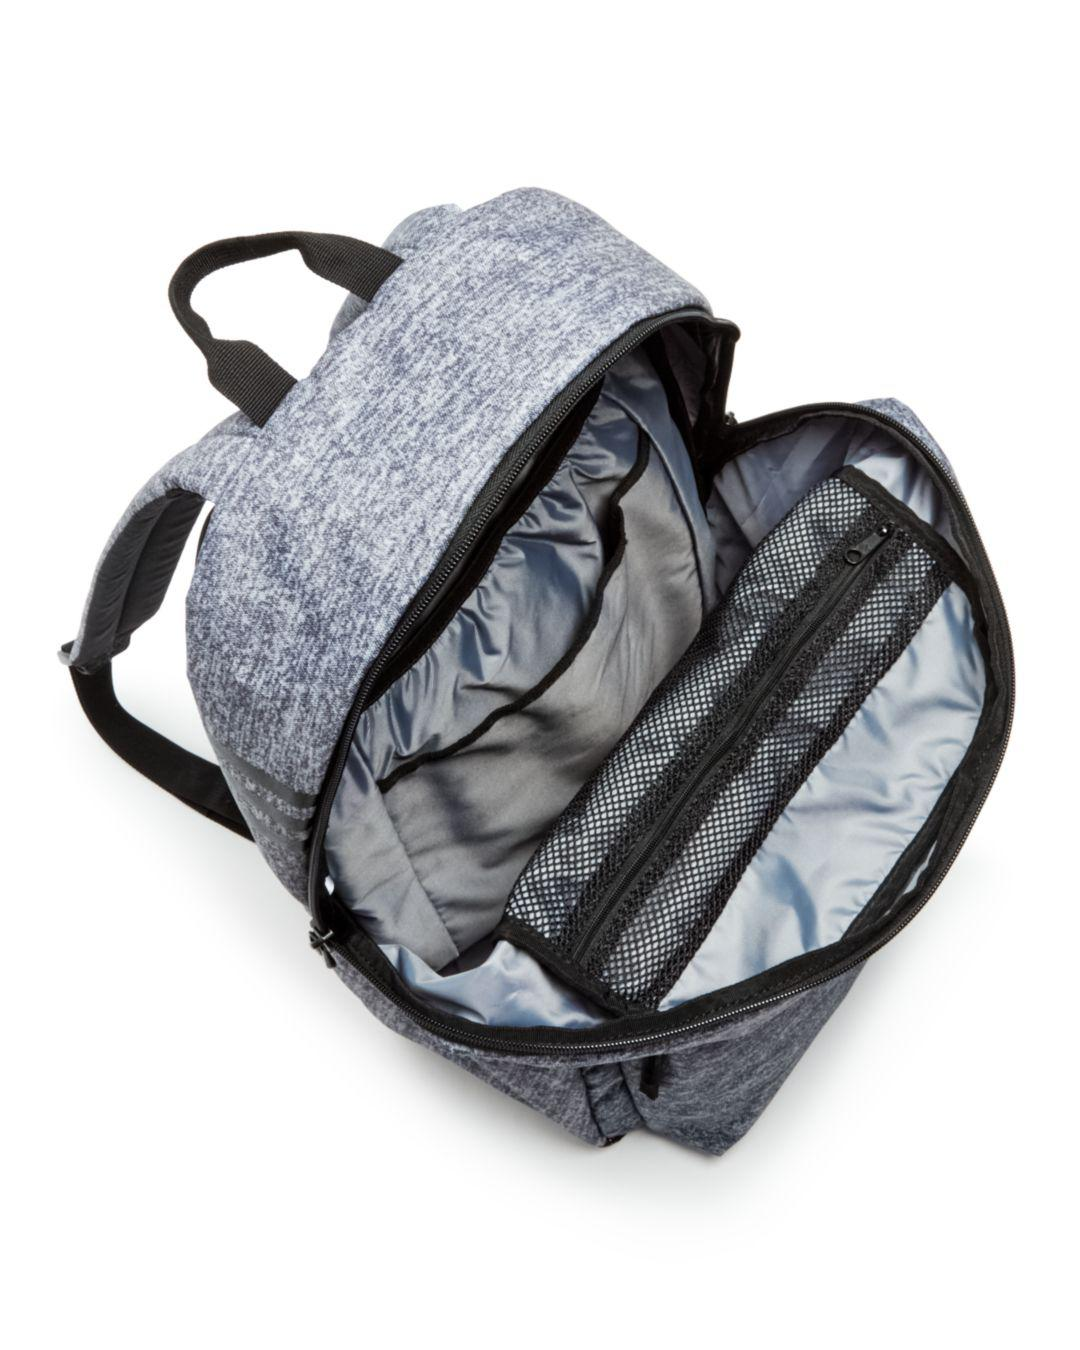 57debee8a2c0 Lyst - Adidas Originals National Heathered Backpack in Gray for Men